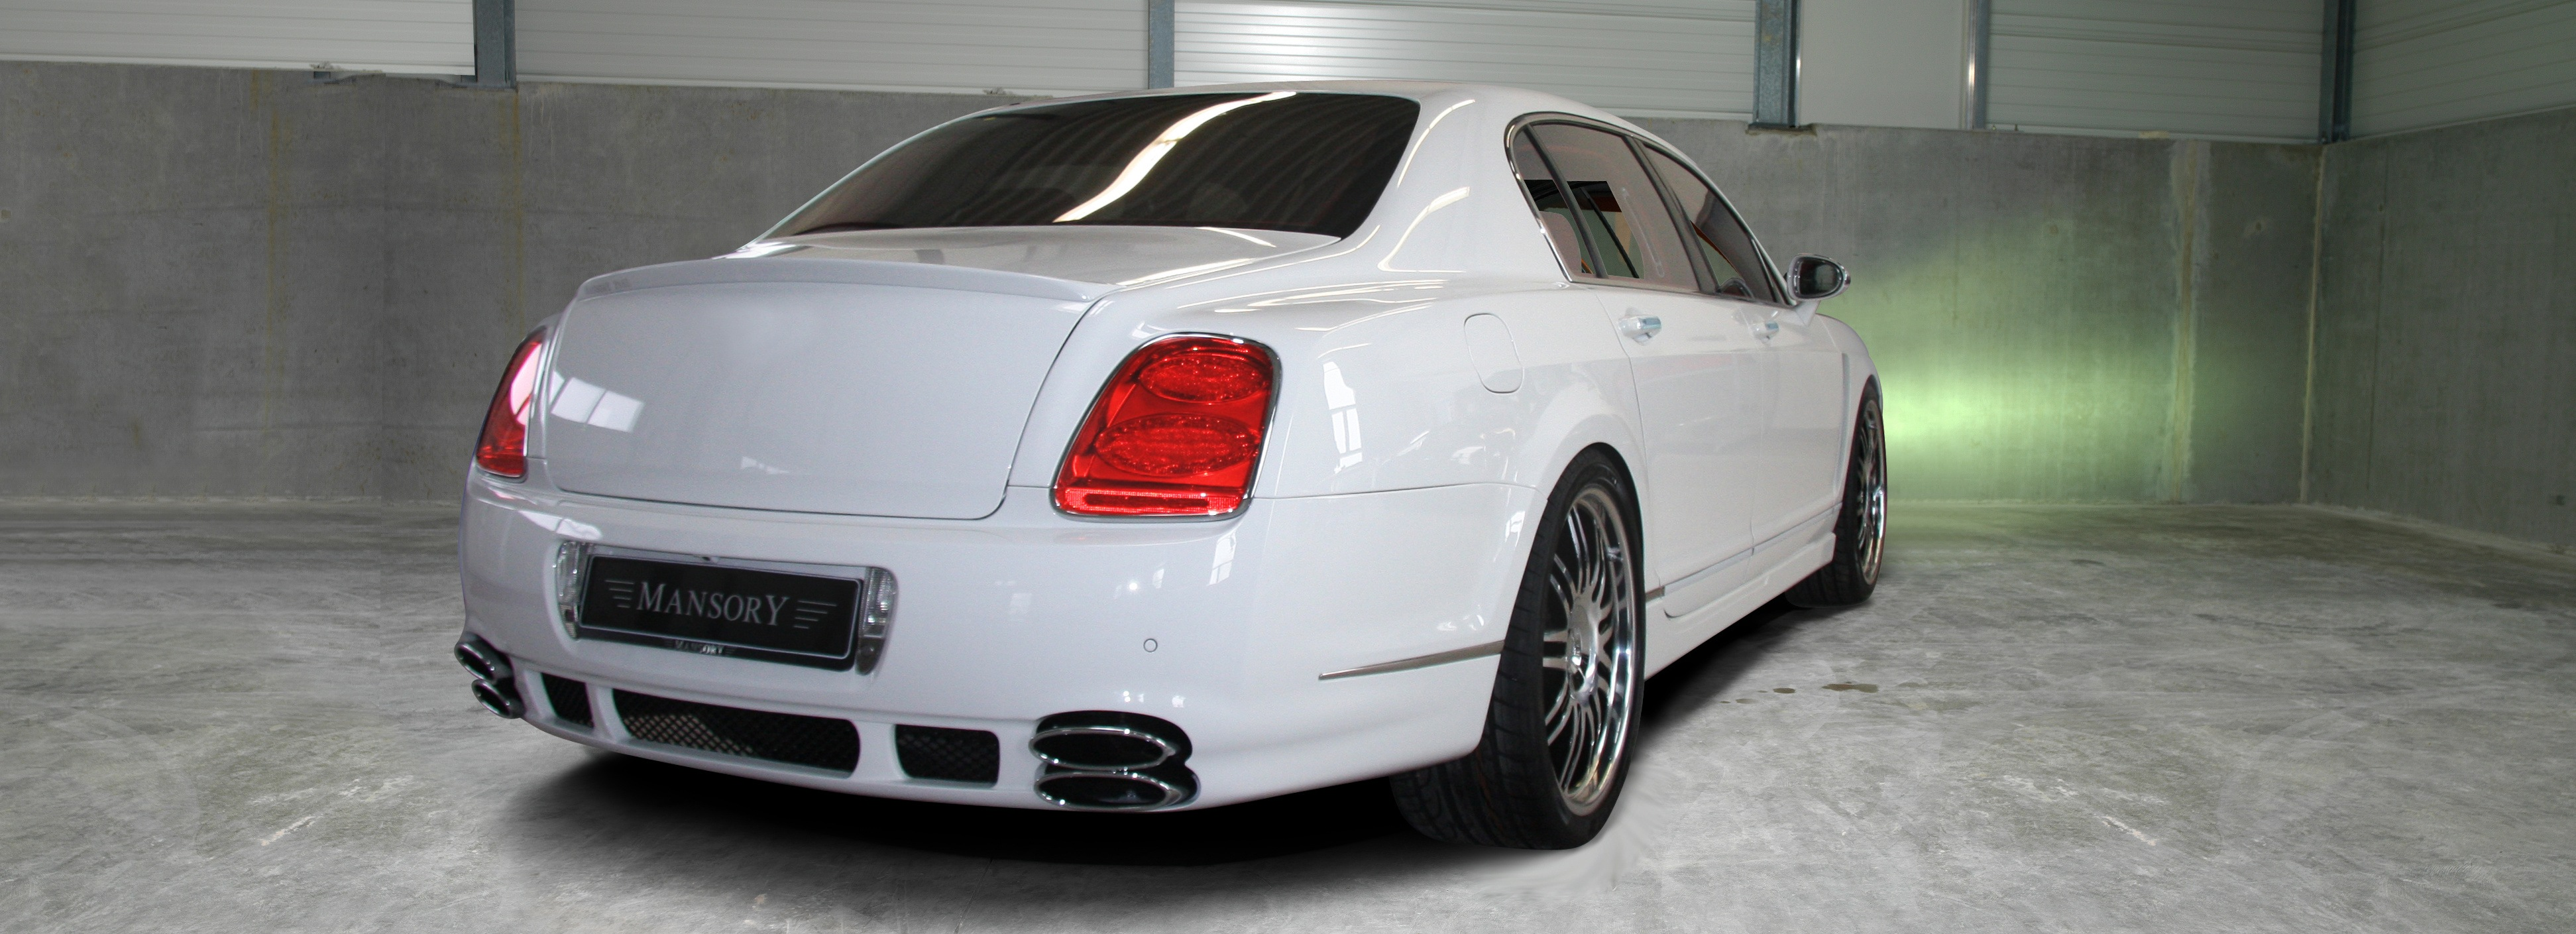 Flying Spur 2005 Mansory